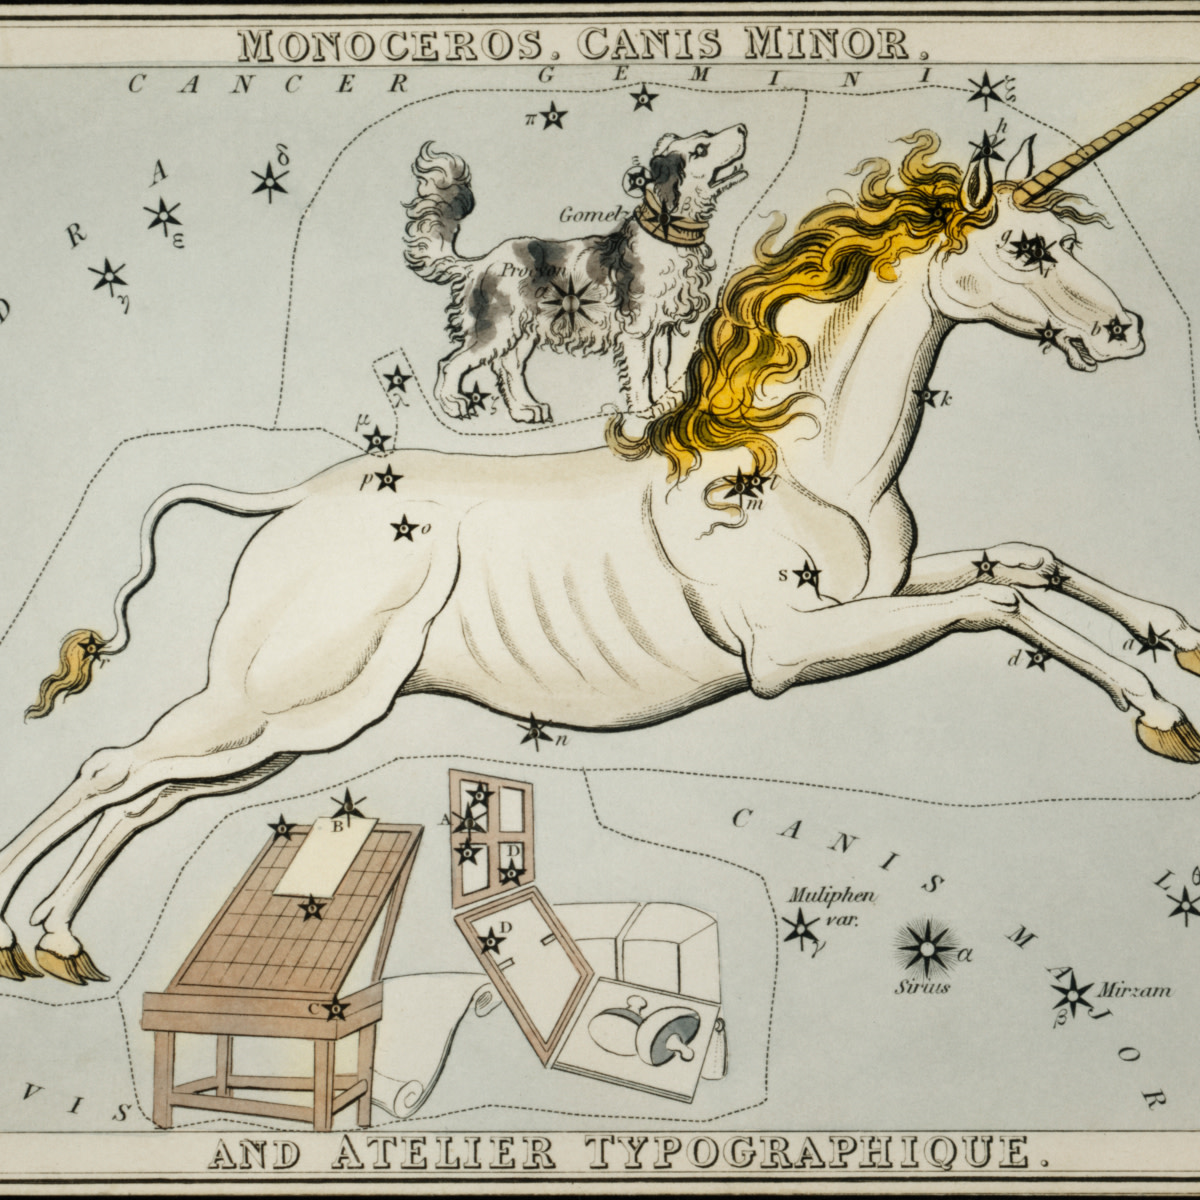 Astronomical chart illustration of the Monoceros, Canis Minor and the Atelier Typographique by Sidney Hall.